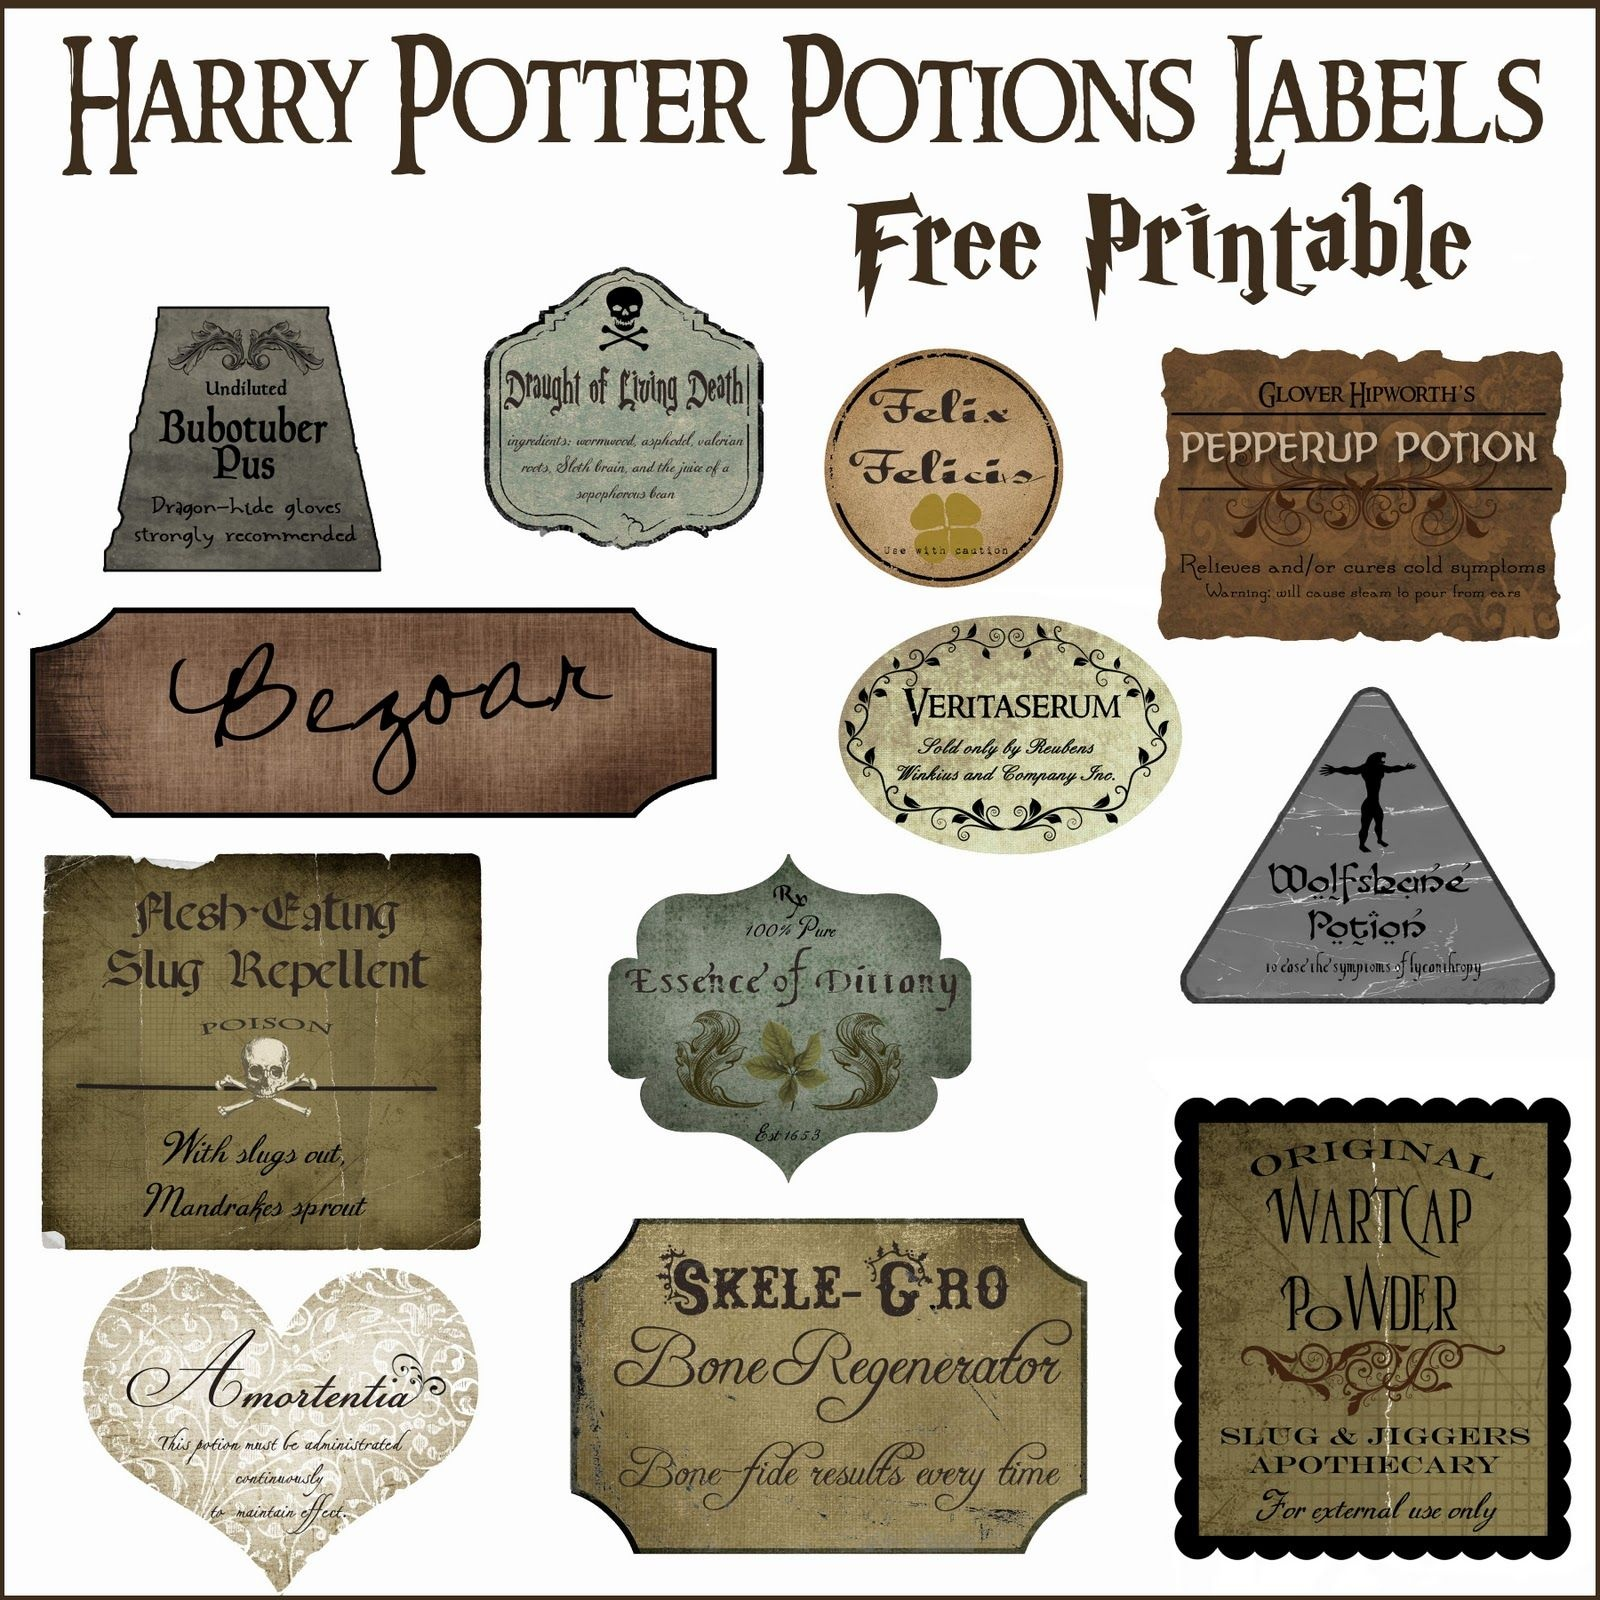 Harry Potter Potion Label Printables | Diy Home Decor Ideas | Harry - Free Printable Potion Labels